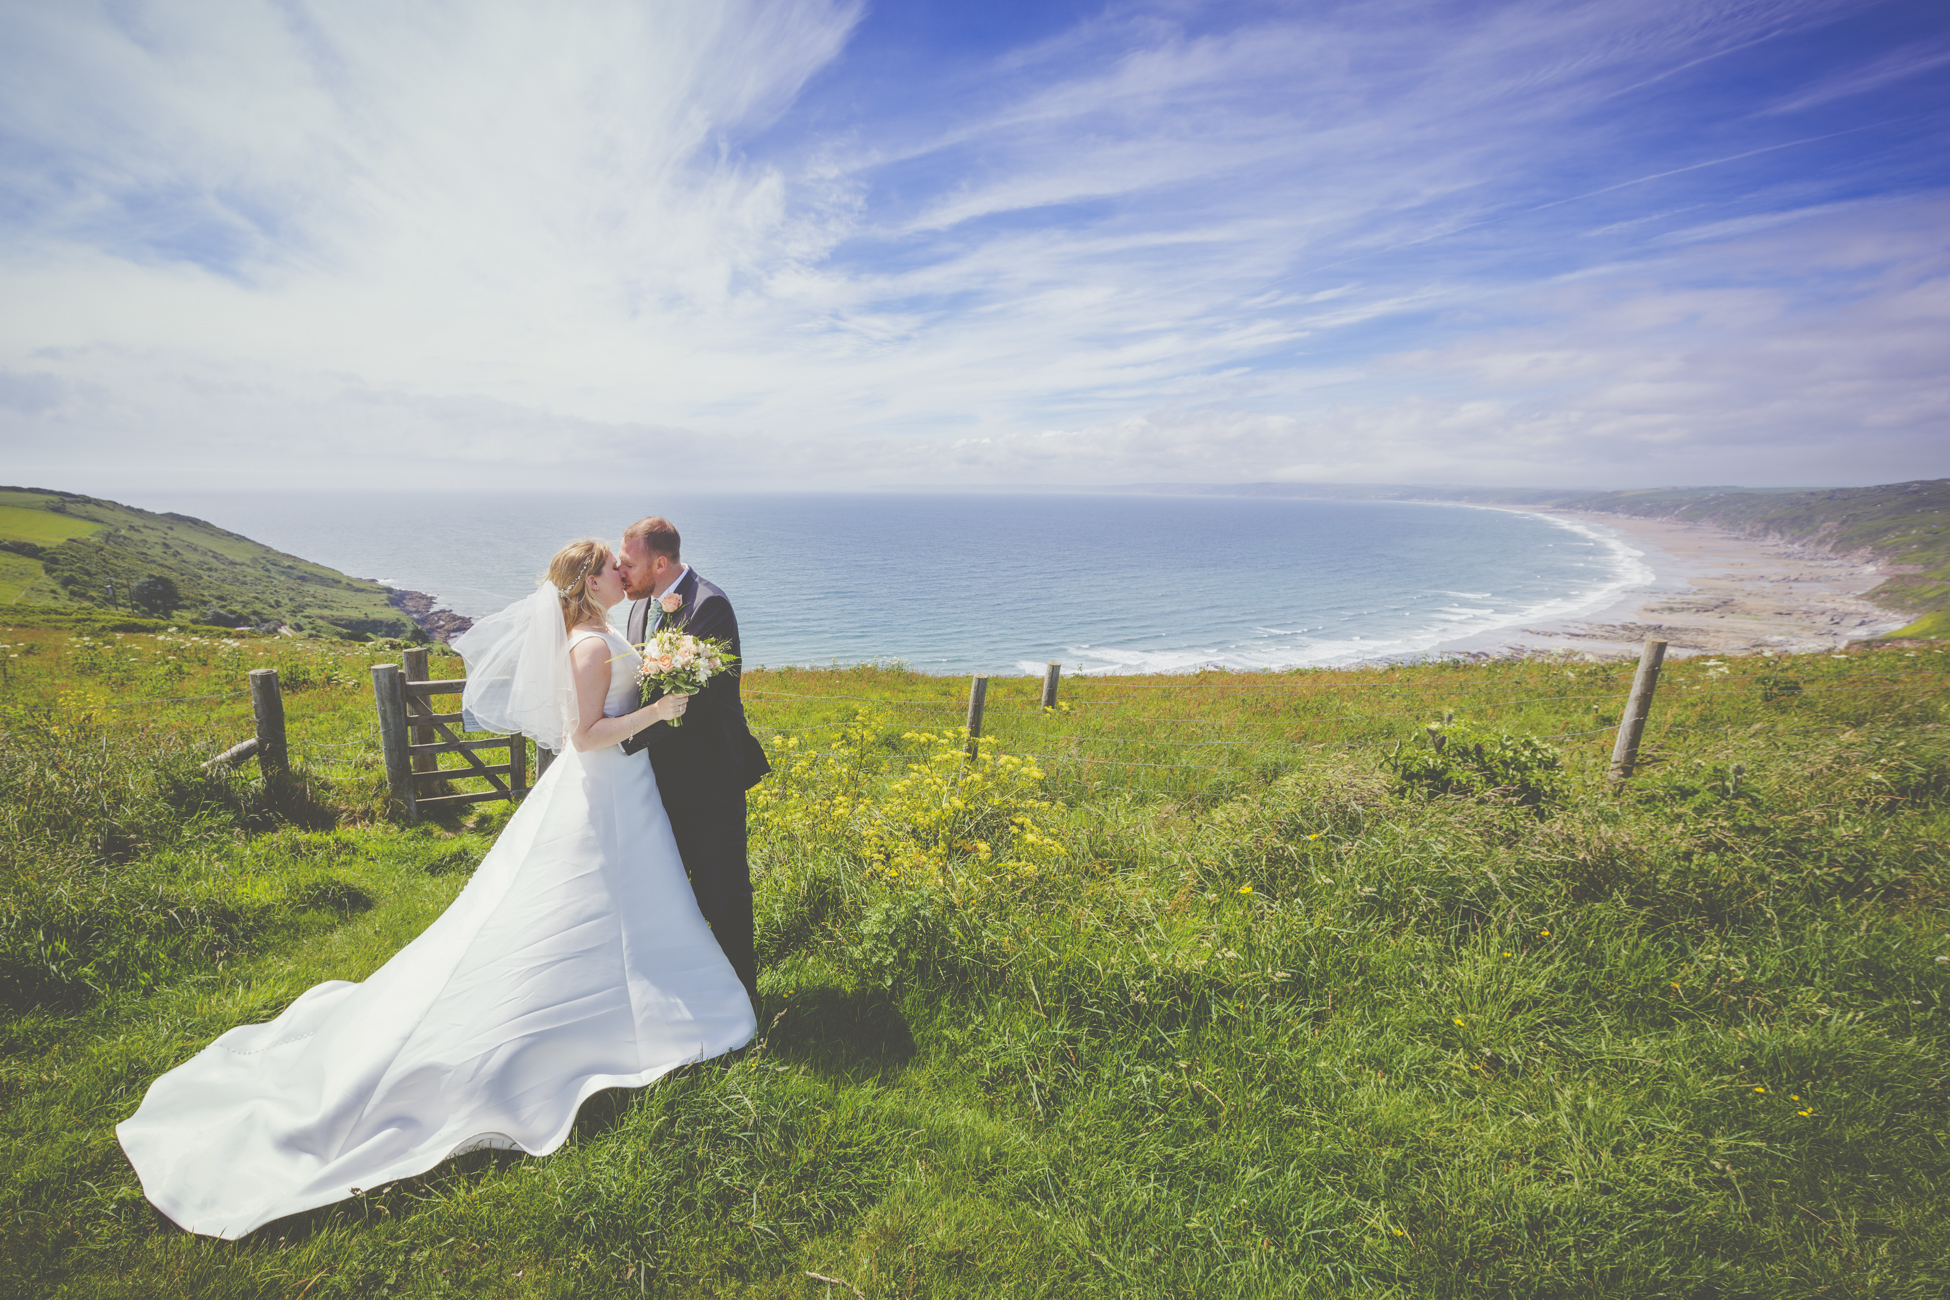 wedding photographer Cornwall, wedding photographer devon,wedding photographer Plymouth